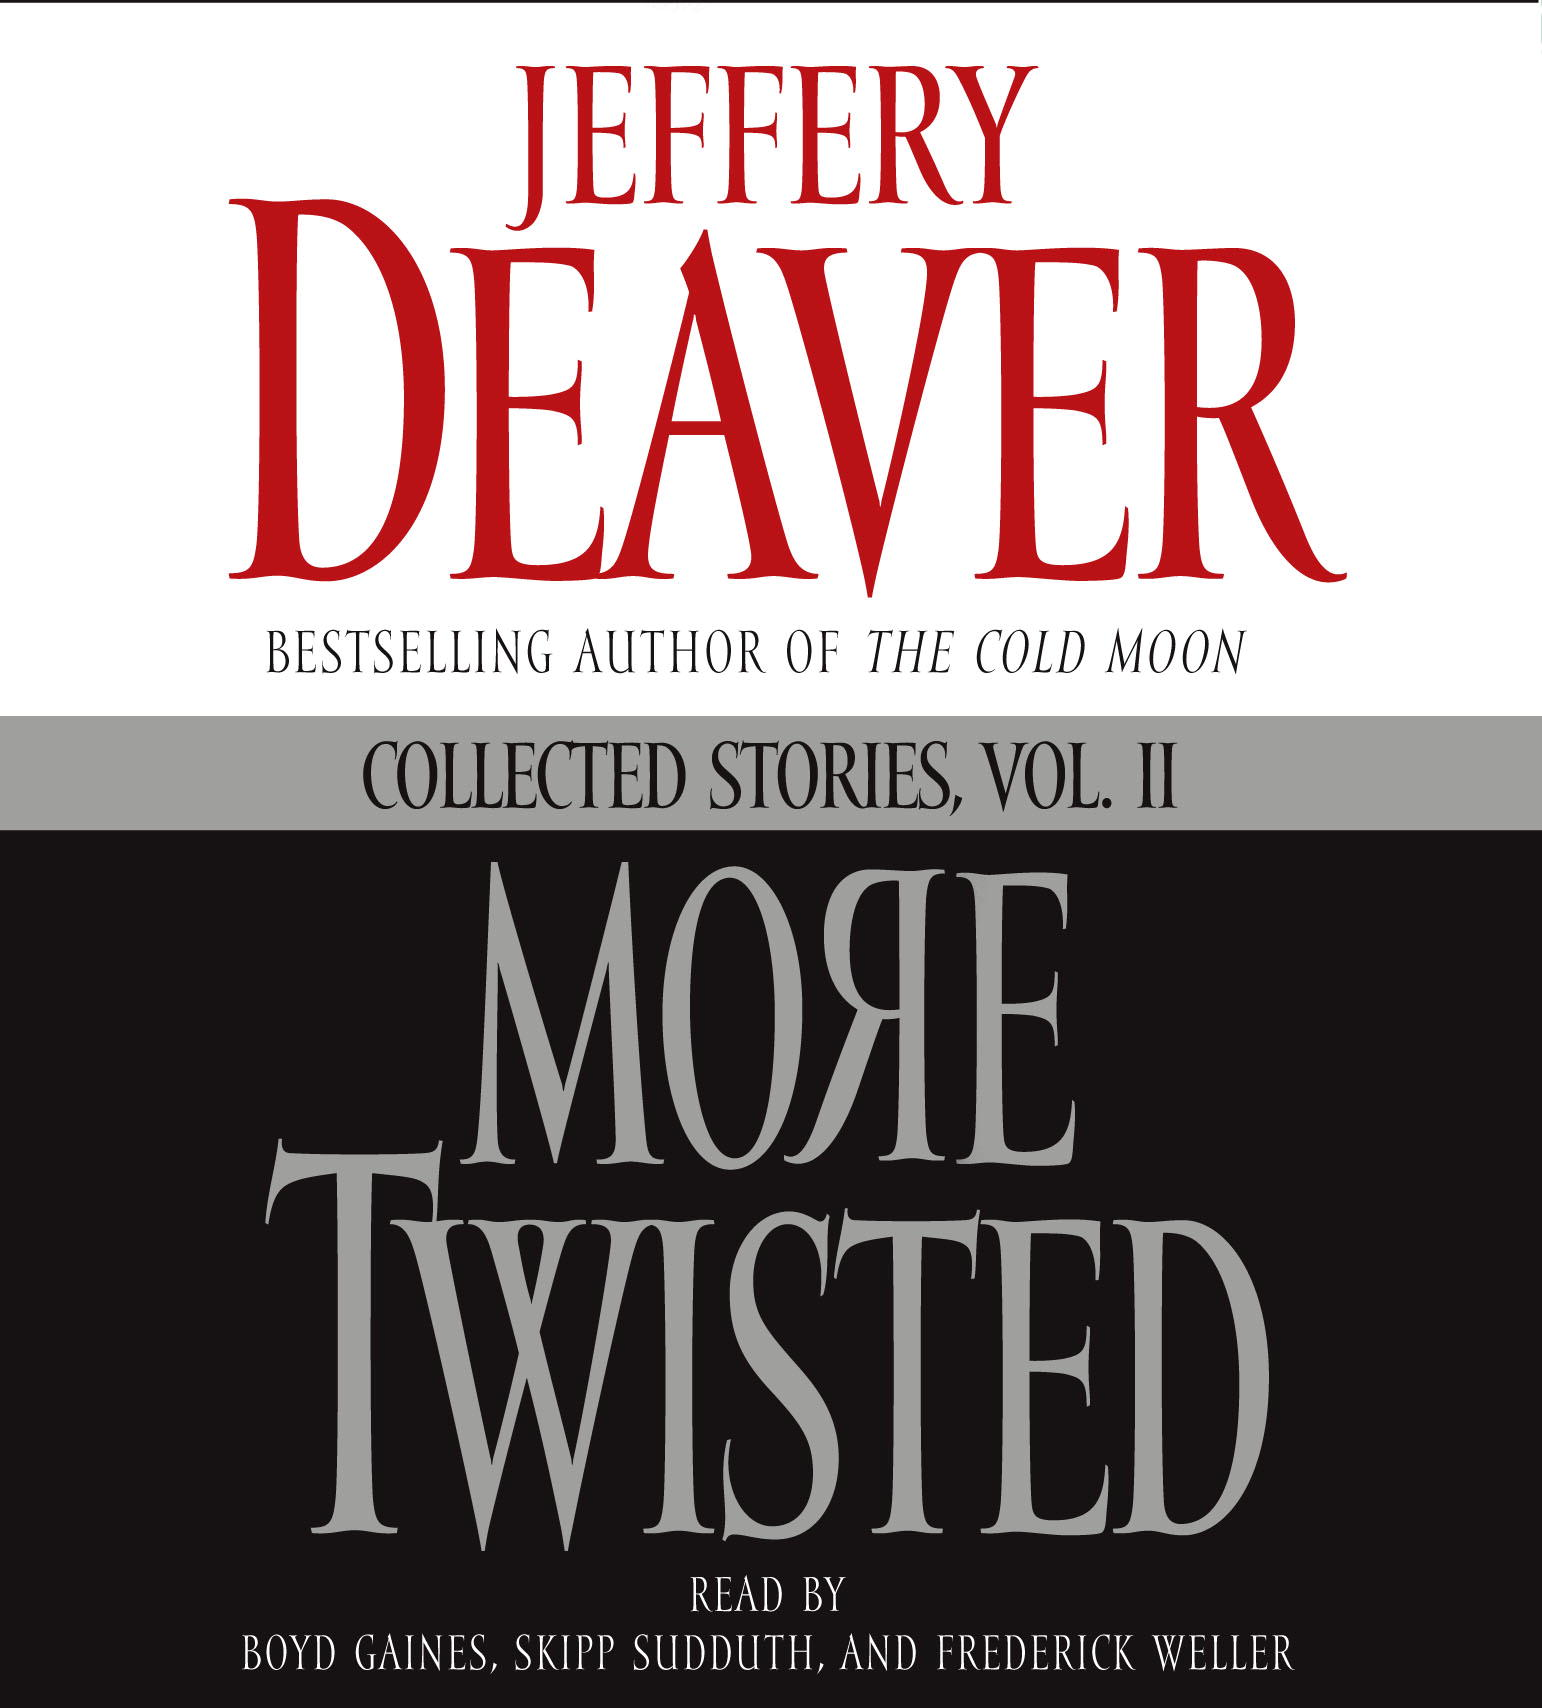 More Twisted: Collected Stories, Vol. II Jeffery Deaver, Boyd Gaines, Skipp Sudduth and Frederick Weller